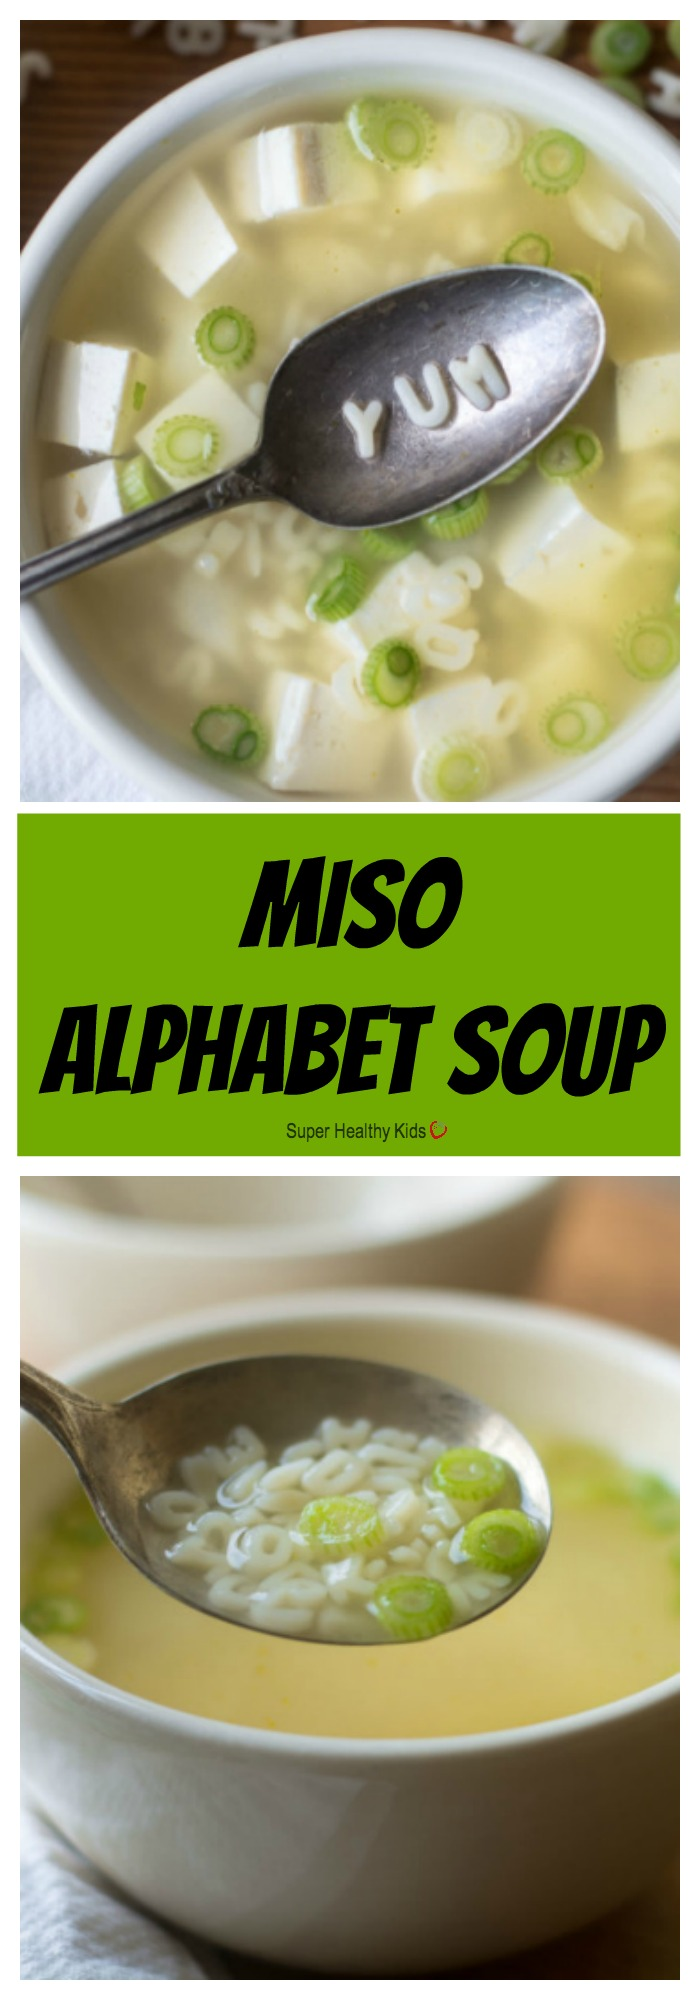 FOOD - Miso Alphabet Soup. Introduce new flavors to your kids in a fun way! http://www.superhealthykids.com/miso-alphabet-soup/